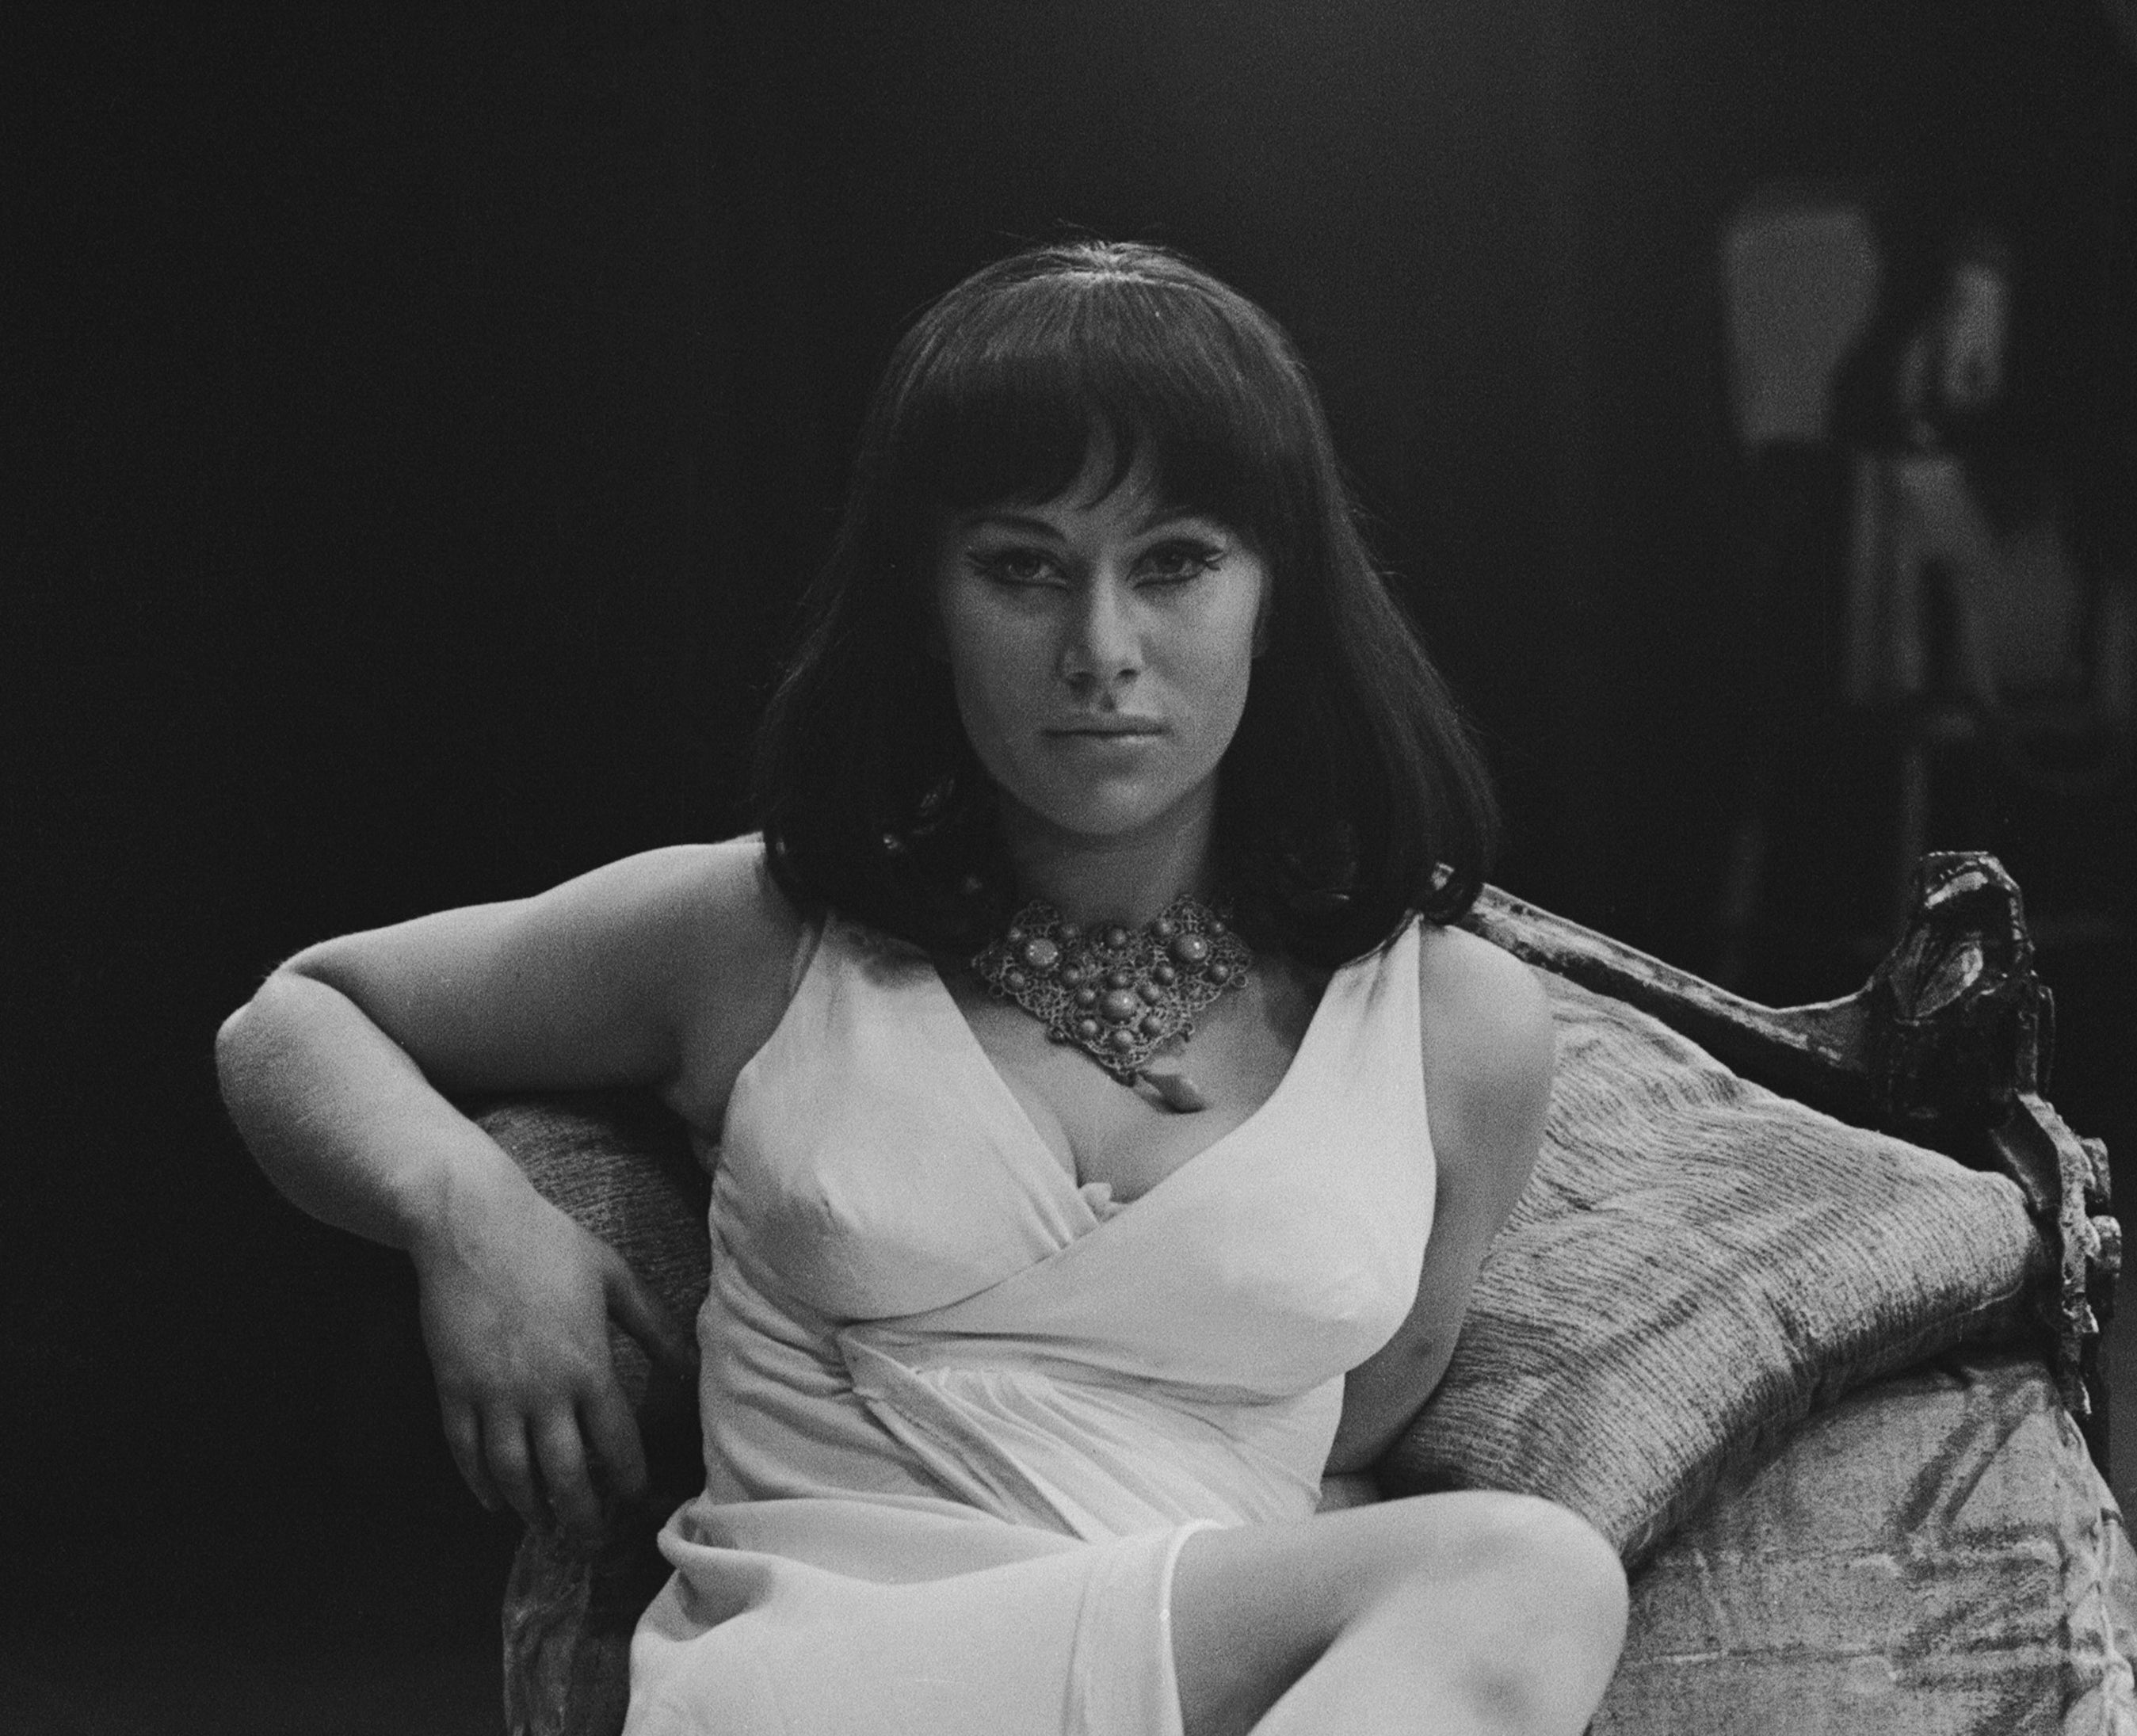 Helen dresses as Cleopatra and laying on a chair